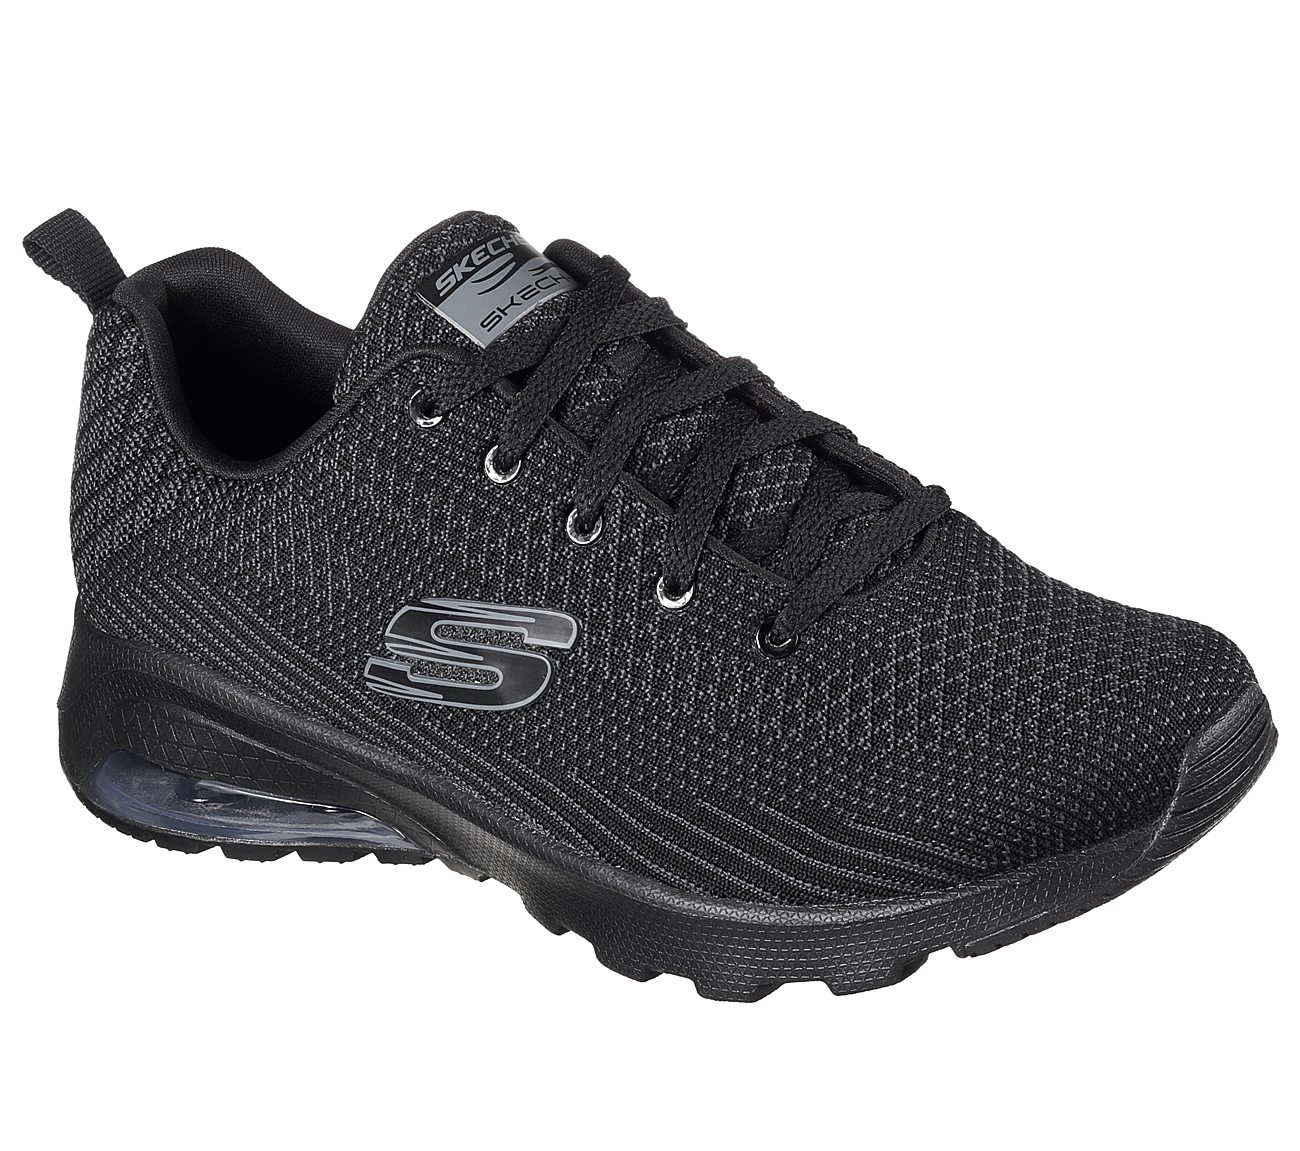 9c8b2d3119e8 Buy SKECHERS Skech-Air Extreme - Awaken Sport Shoes only  85.00